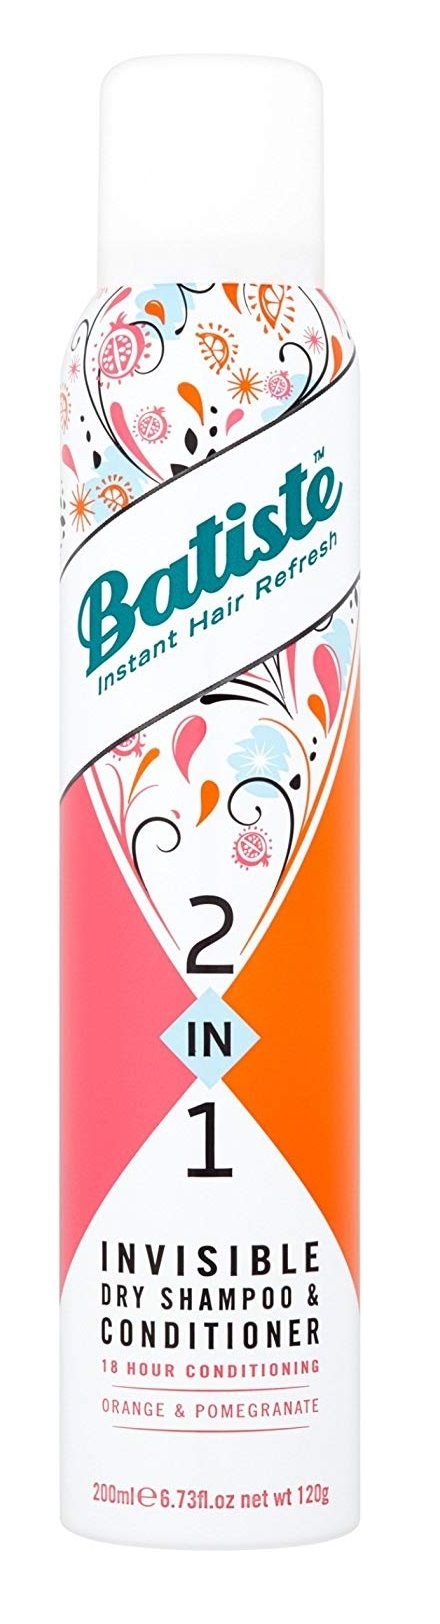 Batiste 2In1 Dry Shampoo & Conditioner - Orange & Pomegranate - For Dry, Coloured And Curly Hair - 200 ml